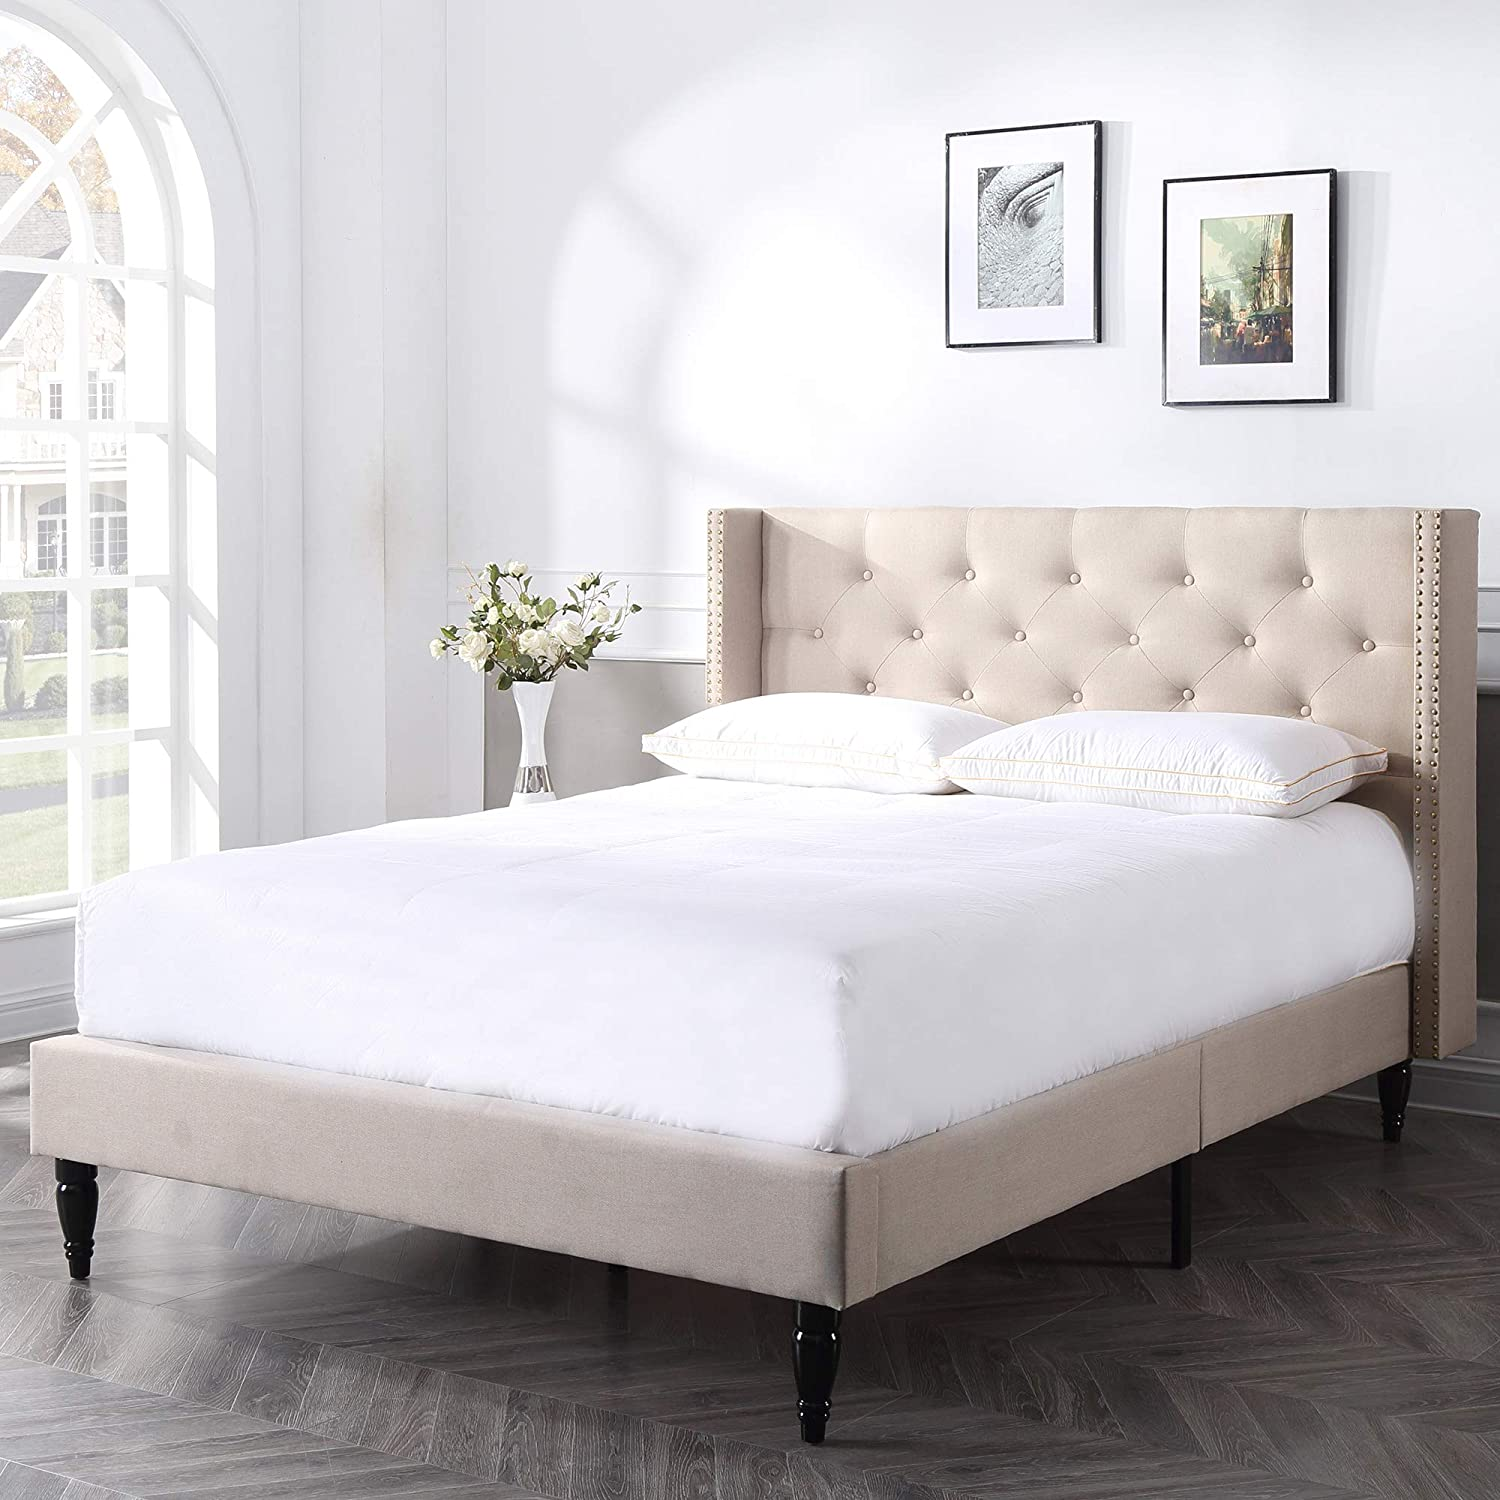 Classic Brands DeCoro Berkeley Upholstered Platform Bed Headboard and Metal Frame with Wood Slat Support Linen, Queen